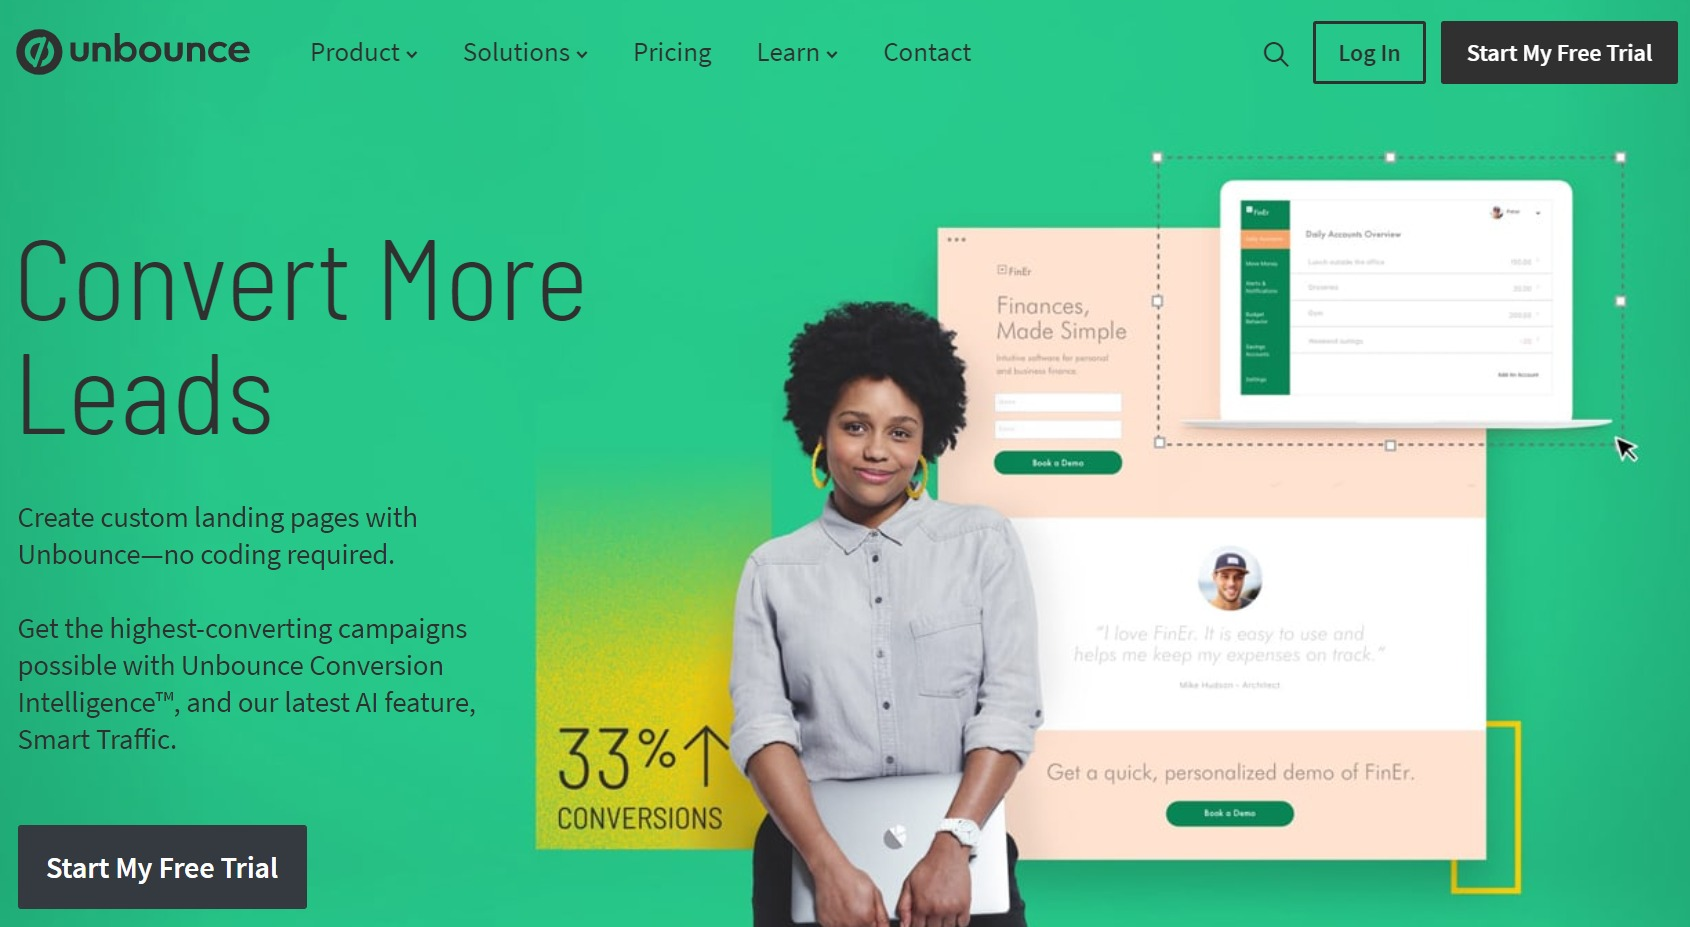 unbounce landing page